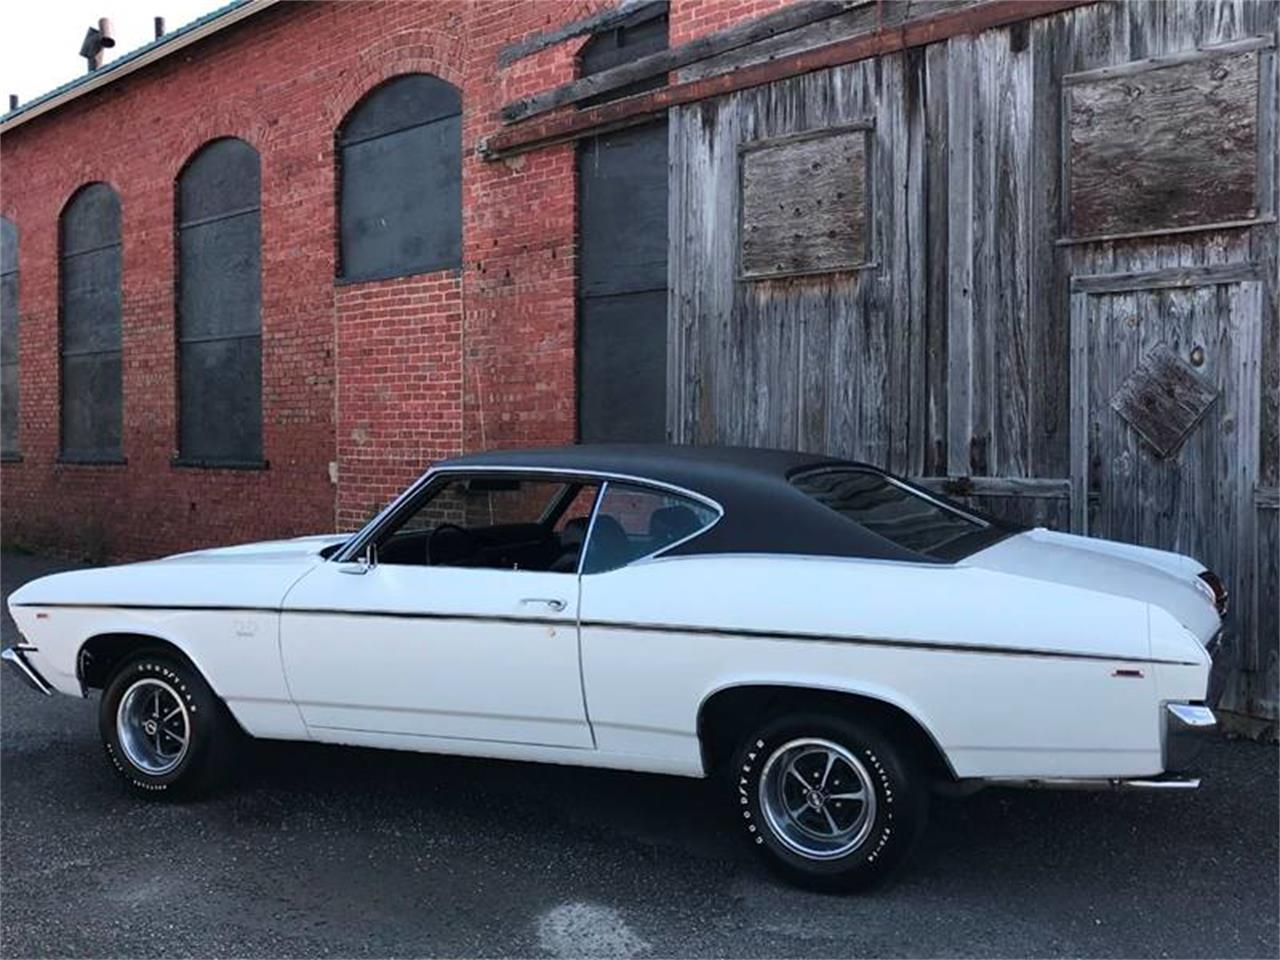 1969 Chevrolet Chevelle for sale in Orville, OH – photo 9